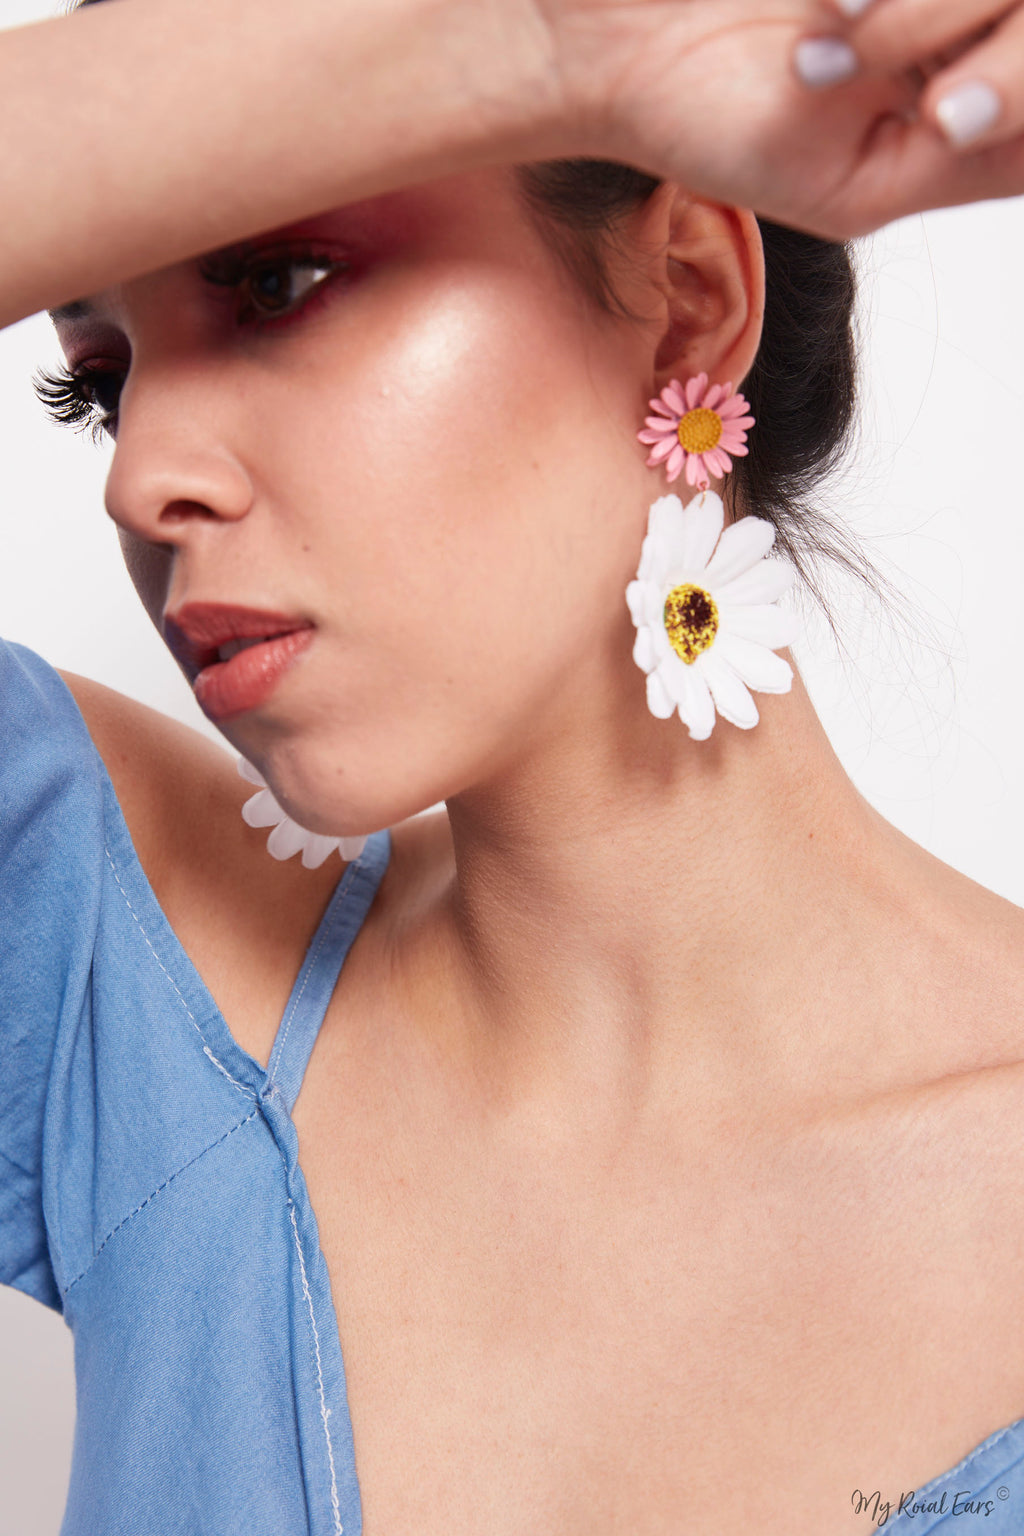 Rosemary-sweet summer beach flower earrings - My Roial Ears LTD